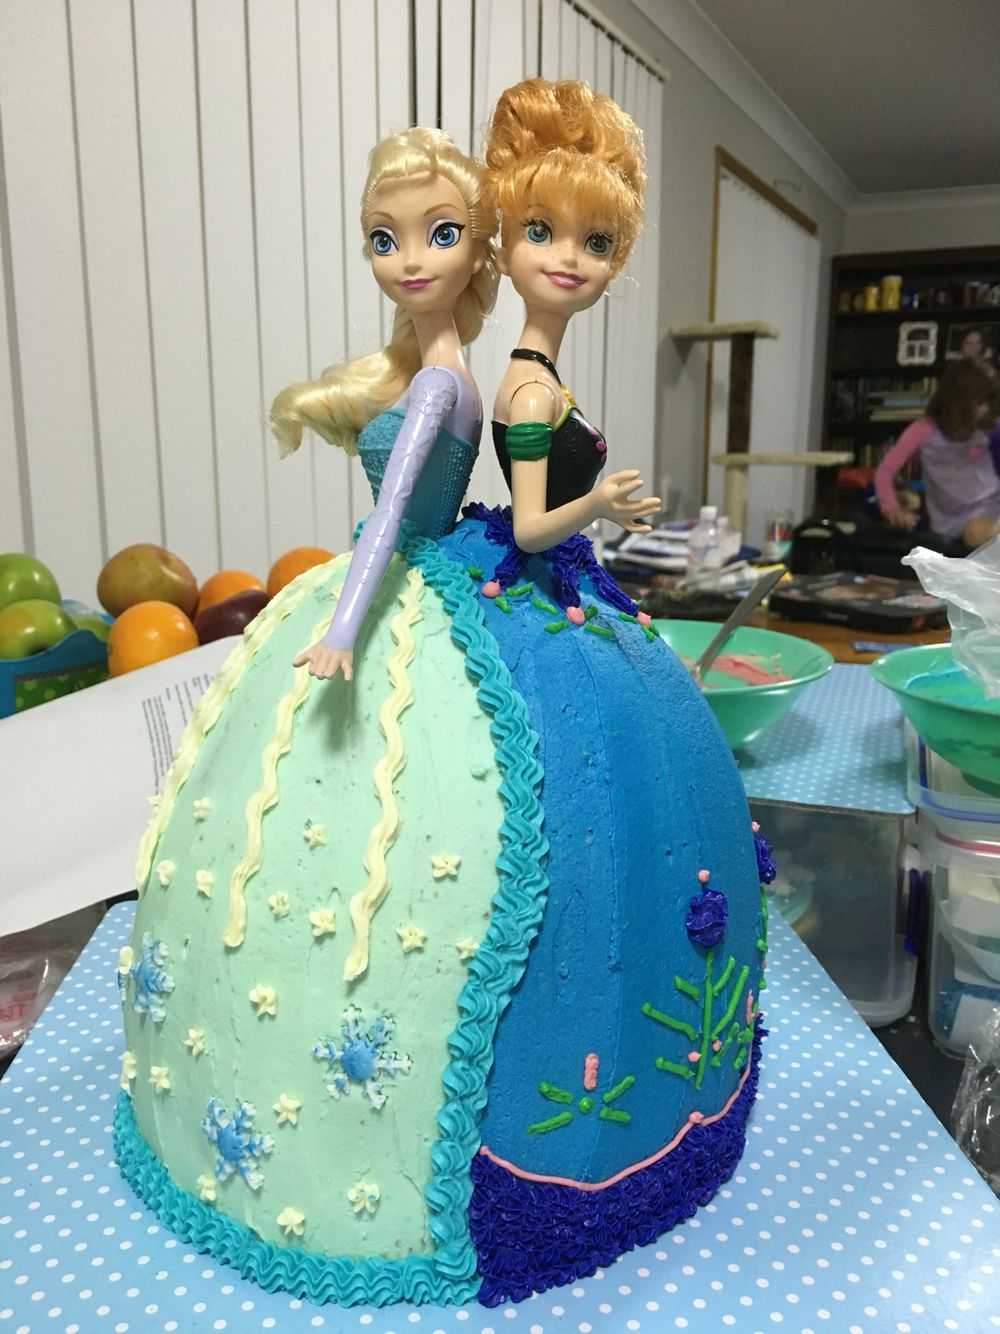 Frozen Elsa And Anna Cake I Made For My Daughters 6th Birthday Frozen Birthday Frozen Elsa And Anna Anna Cake